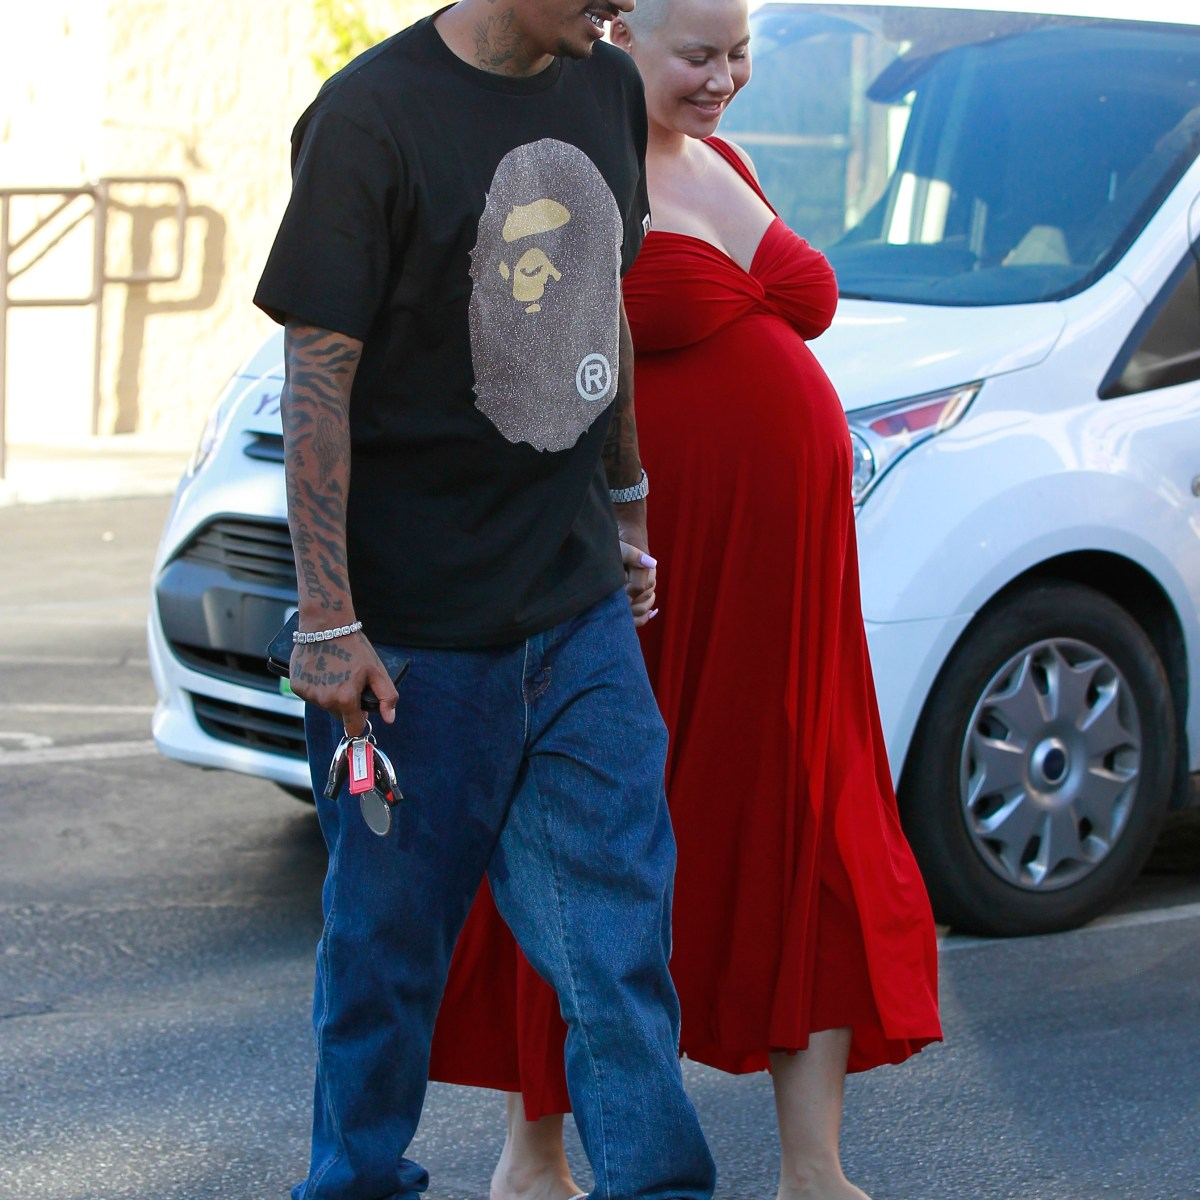 Ravishing in Red! Amber Rose Steps Out With Boyfriend Alexander Edwards While Due Date Approaches